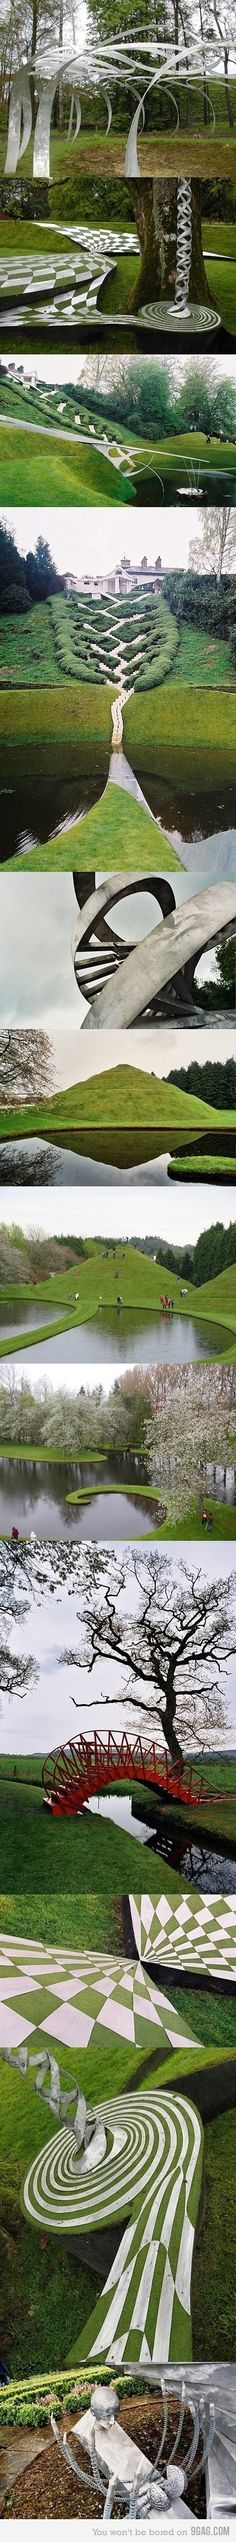 I want to go!--The Garden of Cosmic Speculation near Dunfries in Scotland is the creation of landscape architect and theorist Charles Jencks. #Garden_of_Cosmic_Speculation